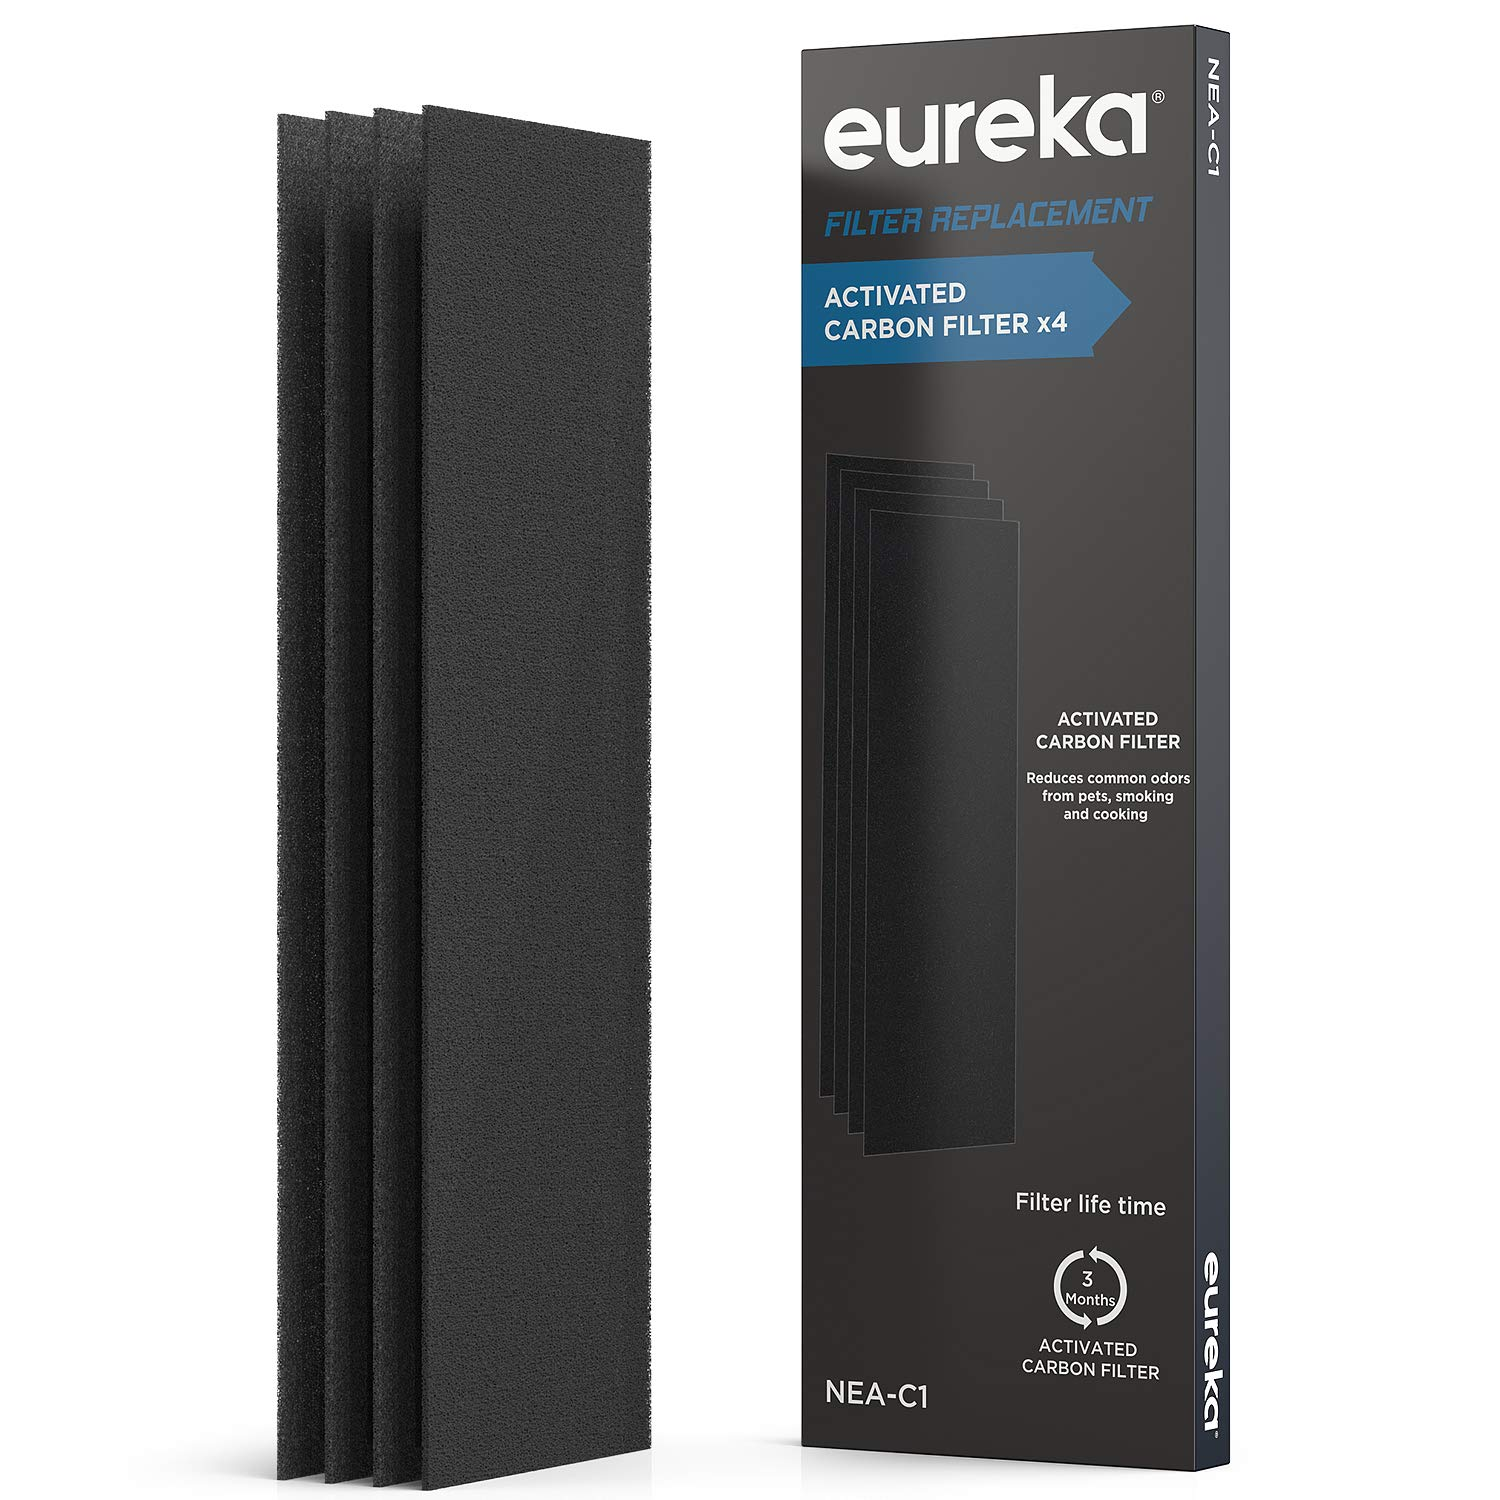 Eureka NEA120 Air Purifier Filter NEA-C1, Activated Carbon Filter x 4, Replacement for InstantClear NEA120